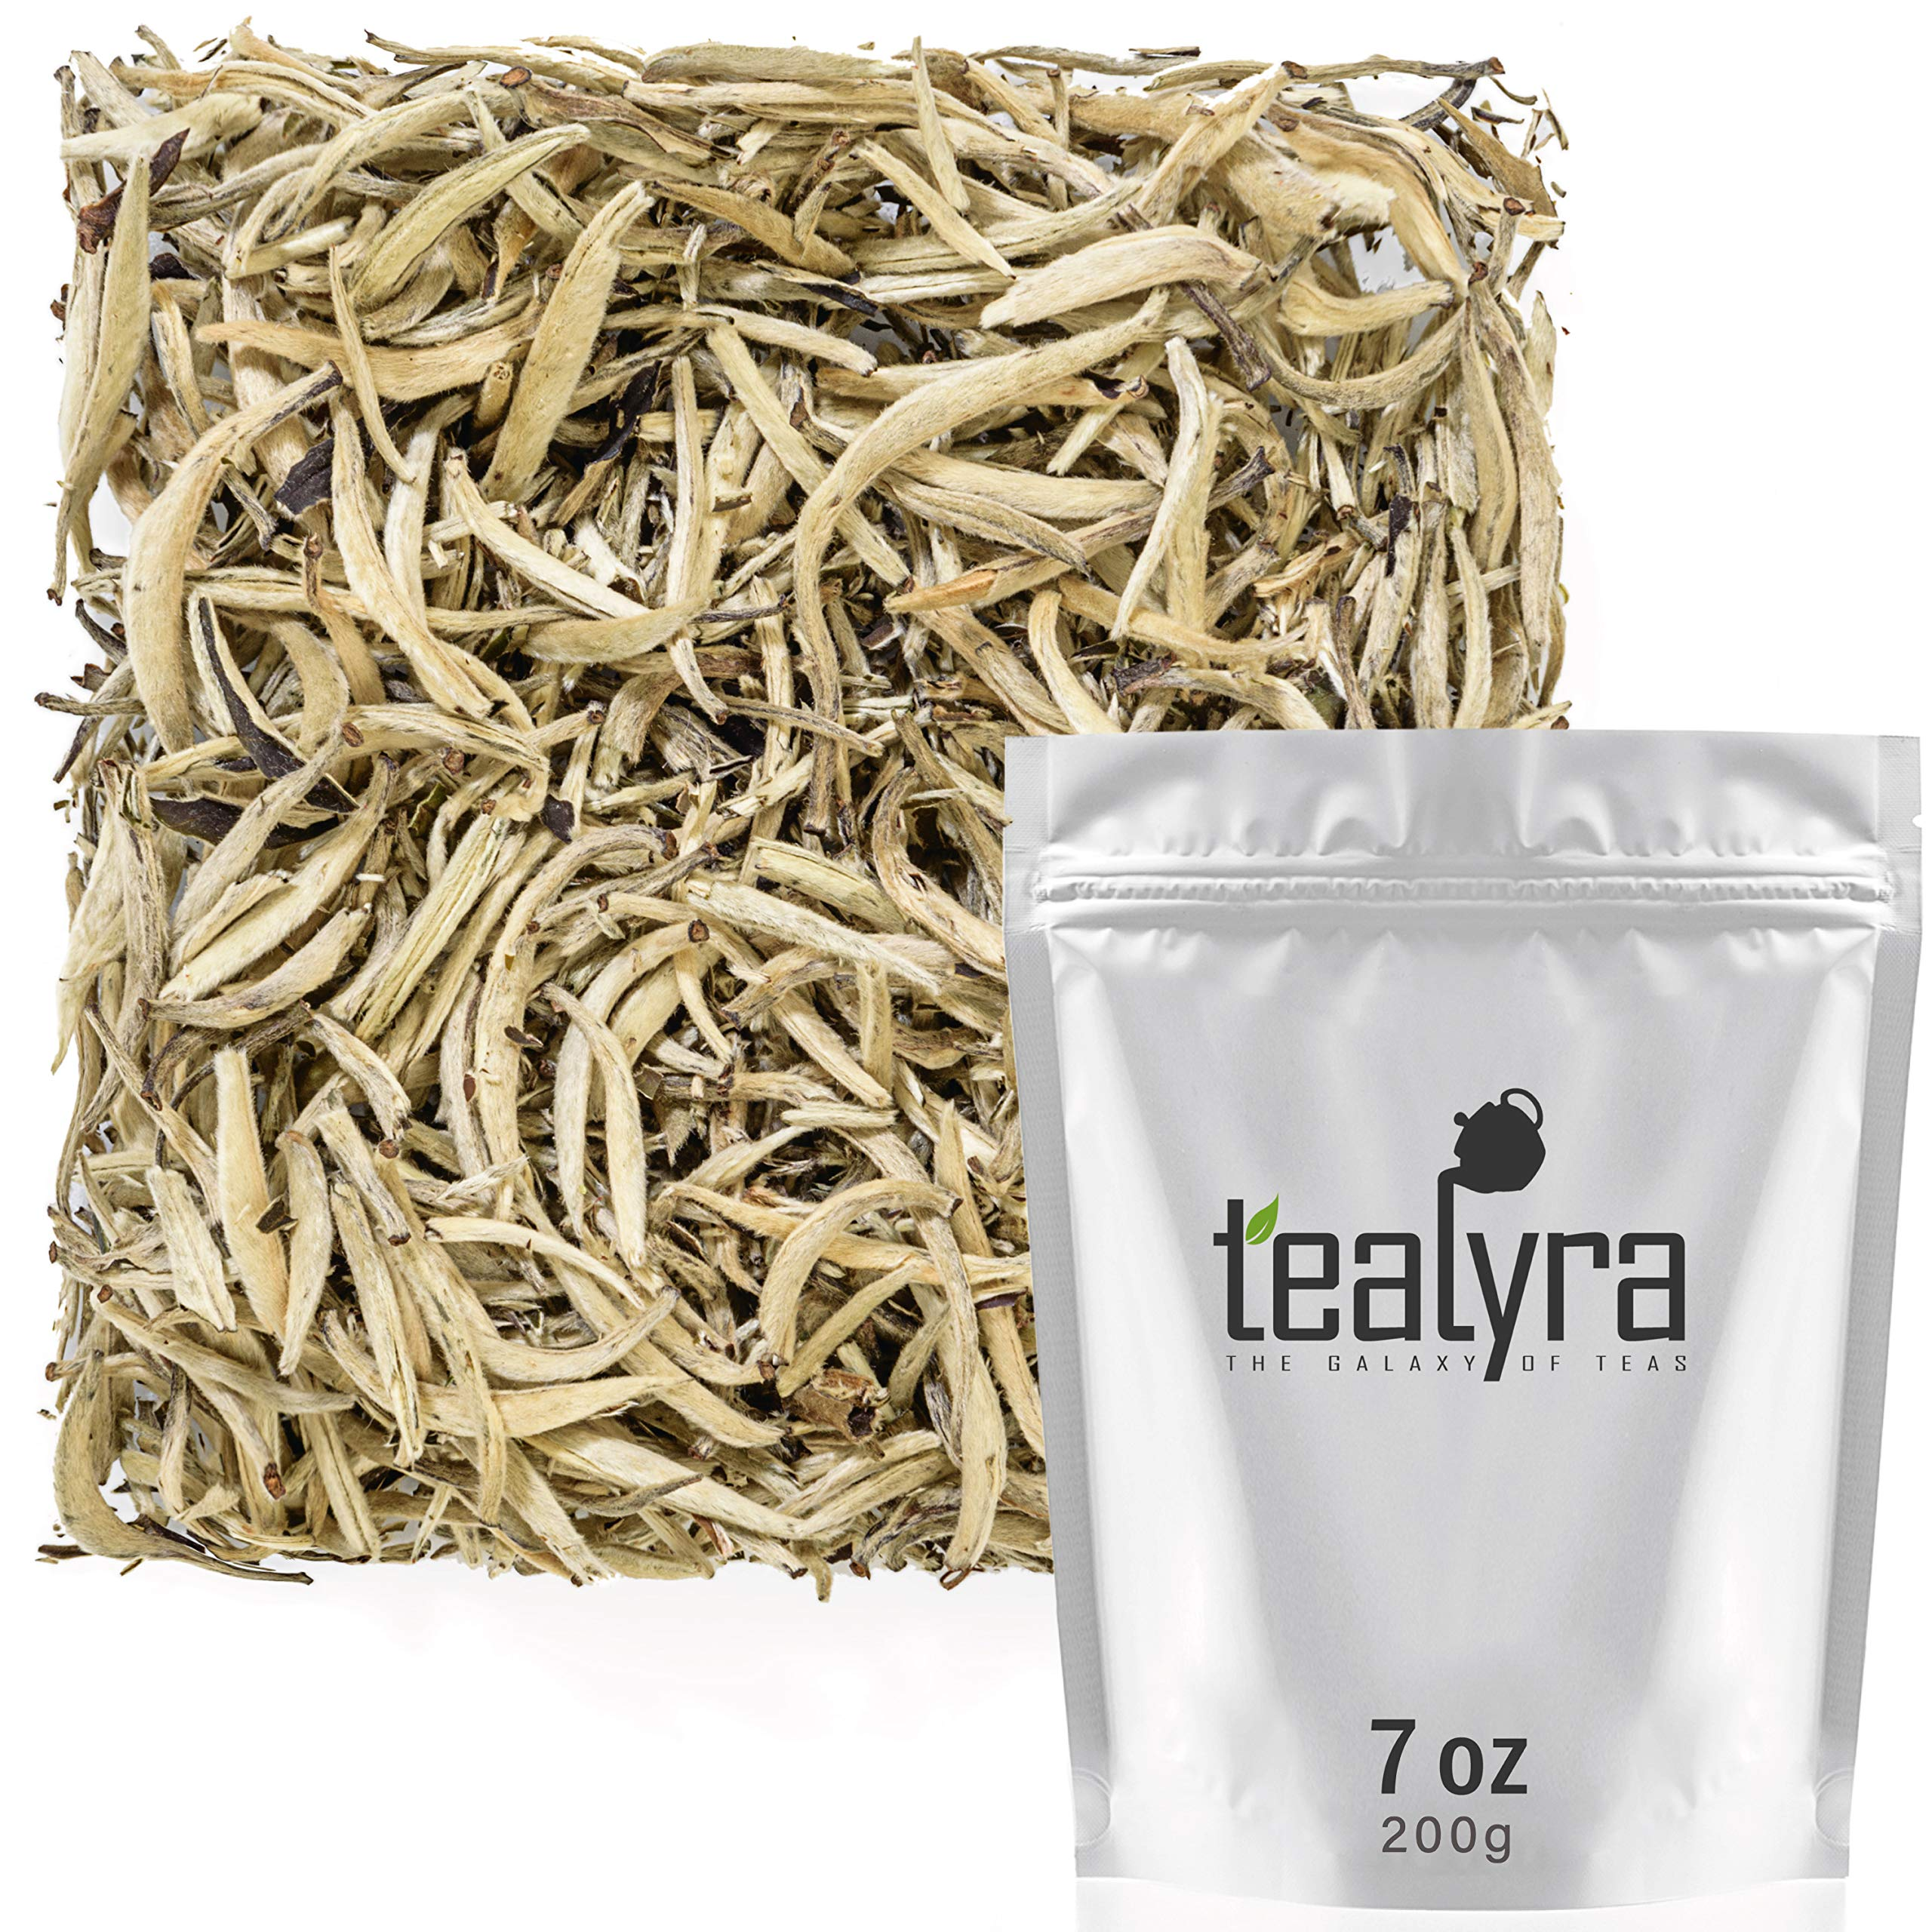 Tealyra - Imperial Yunnan Silver Needle - White Loose Leaf Tea - Organically Grown - Caffeine Level Low - 200g (7-ounce) by Tealyra